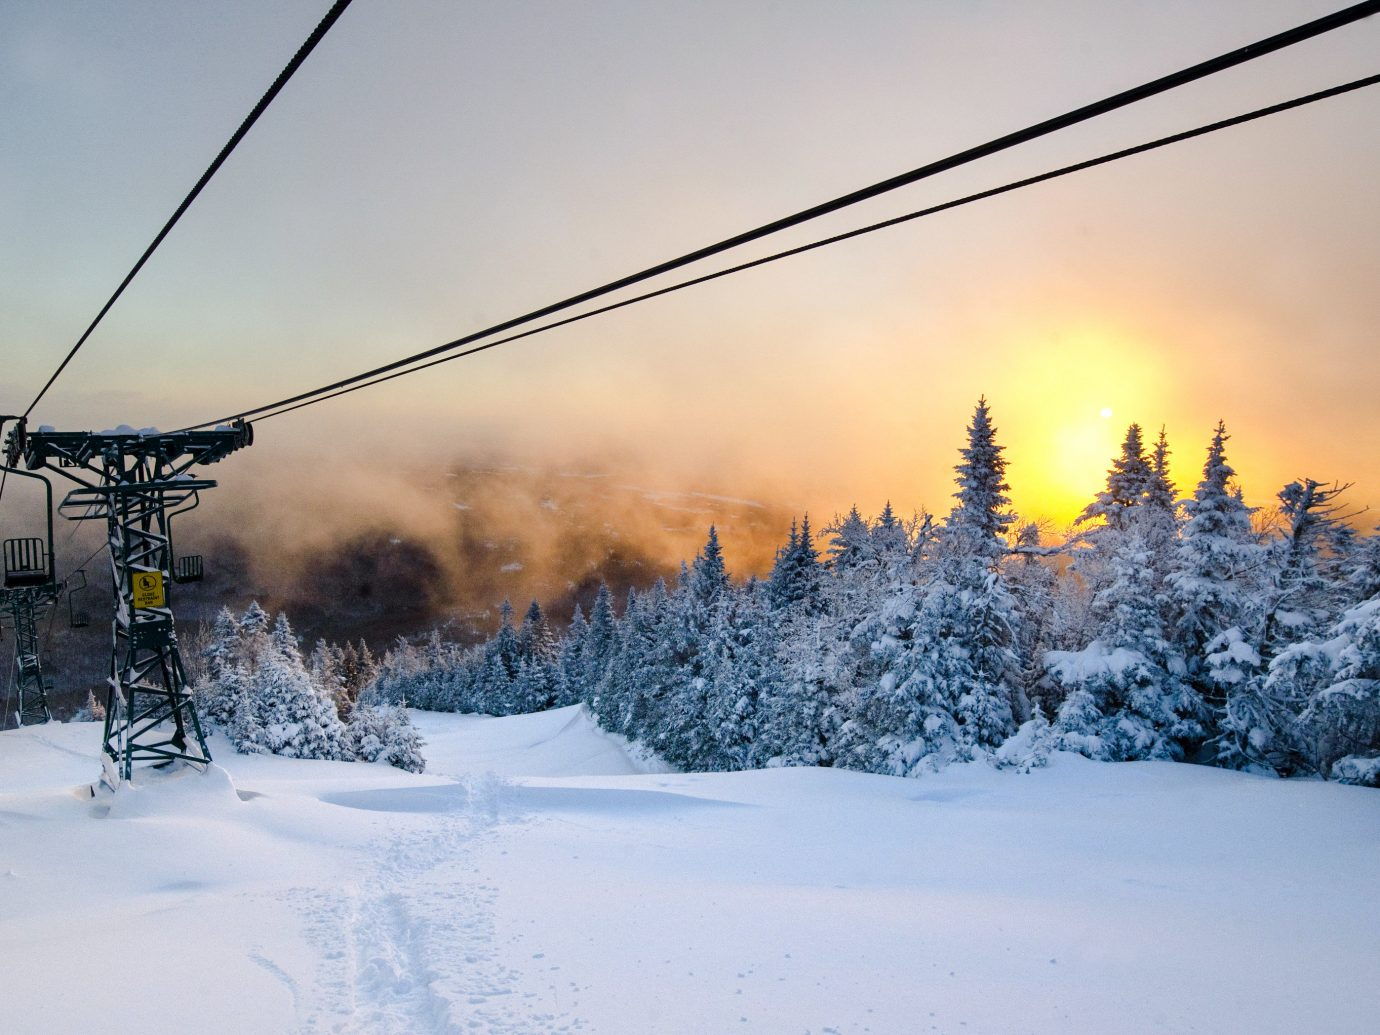 alpine skiing East Coast USA Trip Ideas snow sky outdoor Winter ski tow Nature transport freezing tree woody plant frost light morning geological phenomenon cloud atmosphere sunlight mountain mountain range ice evening landscape fir arctic plant branch pine family